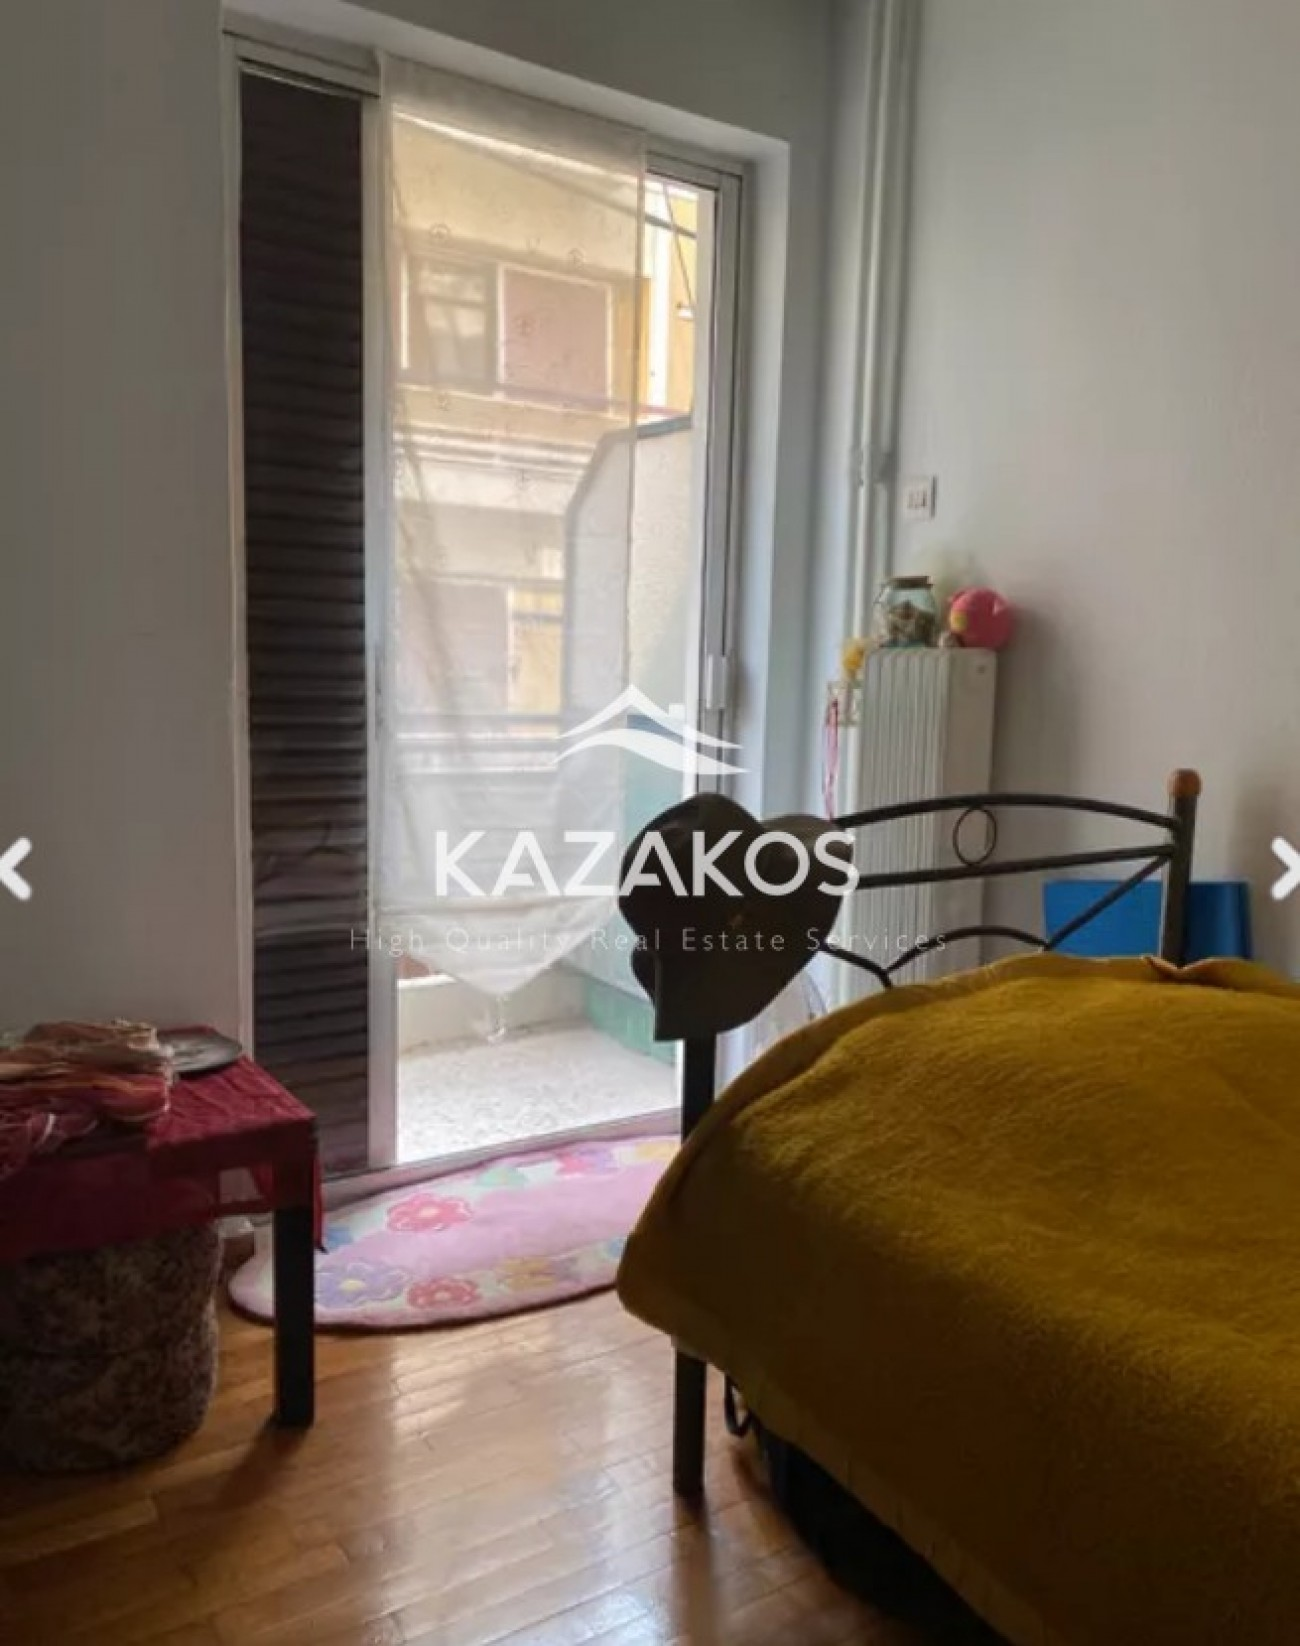 Townhouse for Sale in Nea Ionia, Central & West Region of Athens, Greece